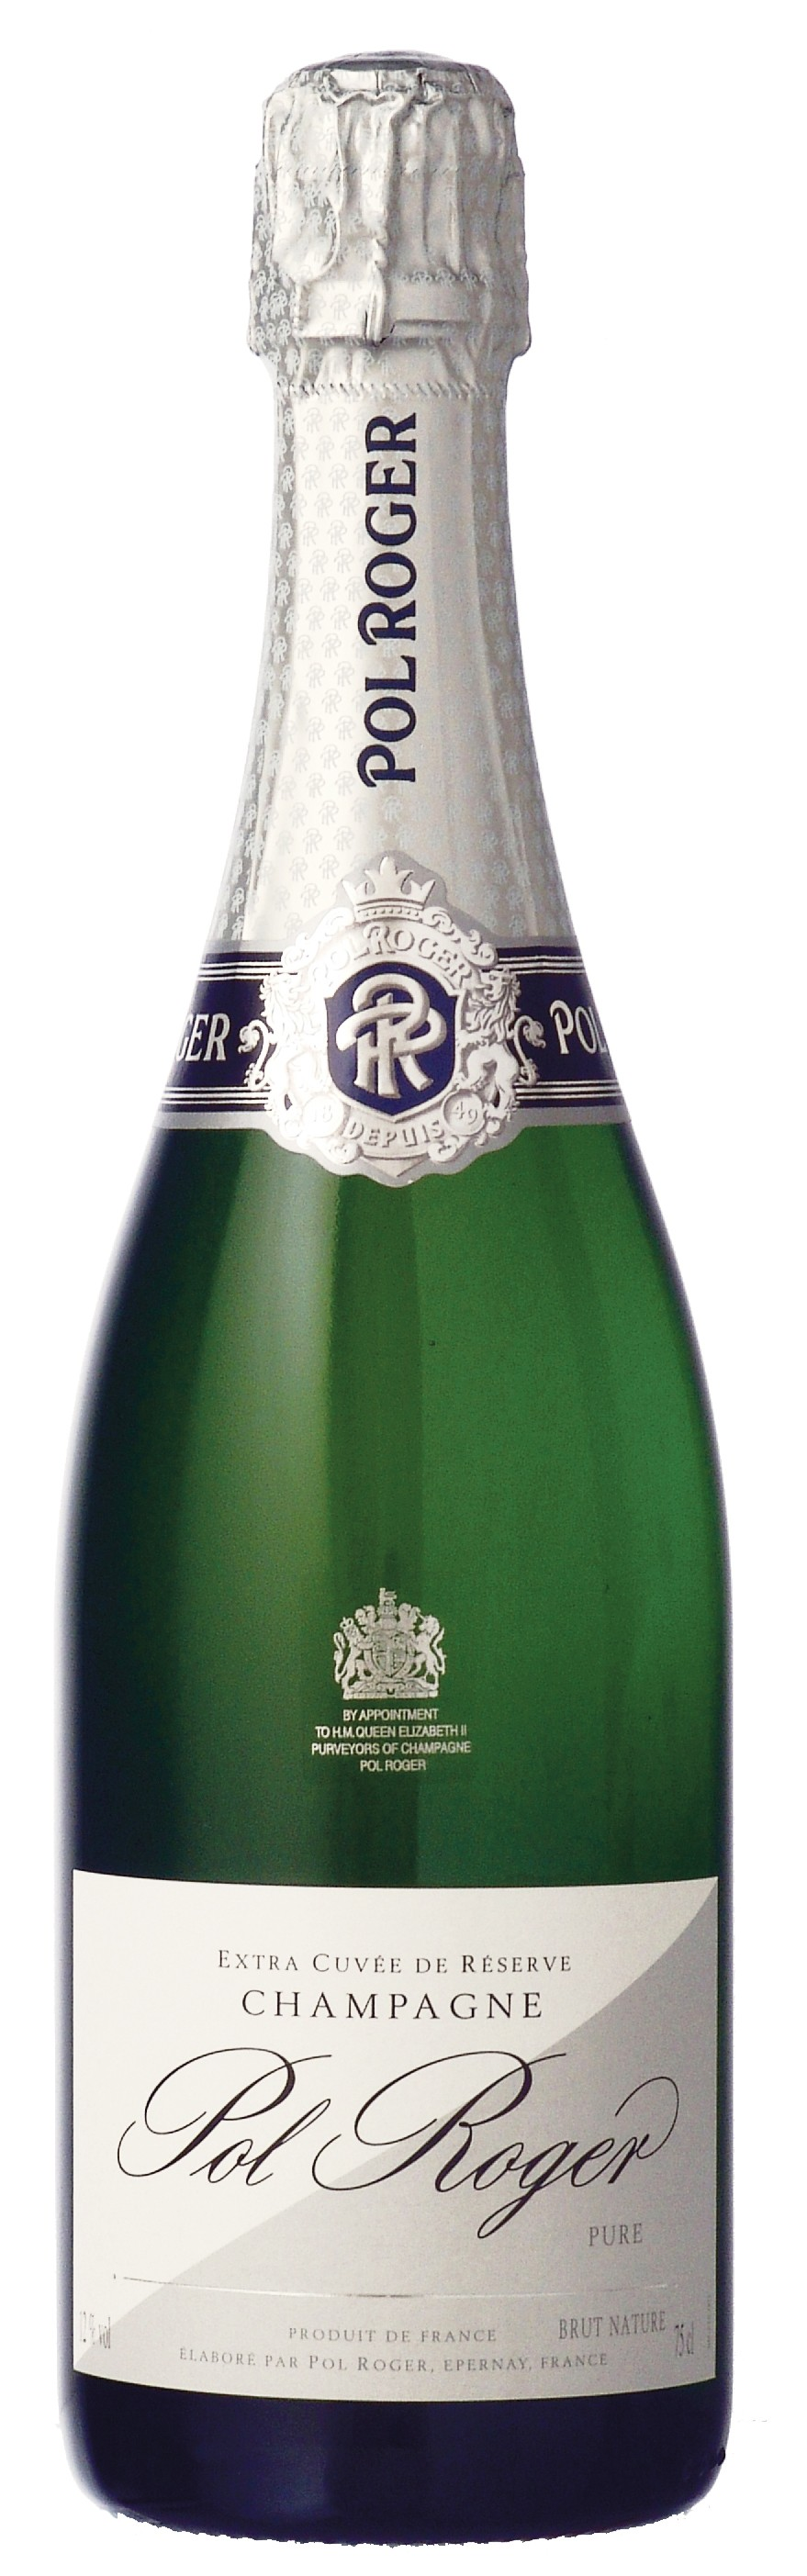 Champagne Brut Pure Pol Roger